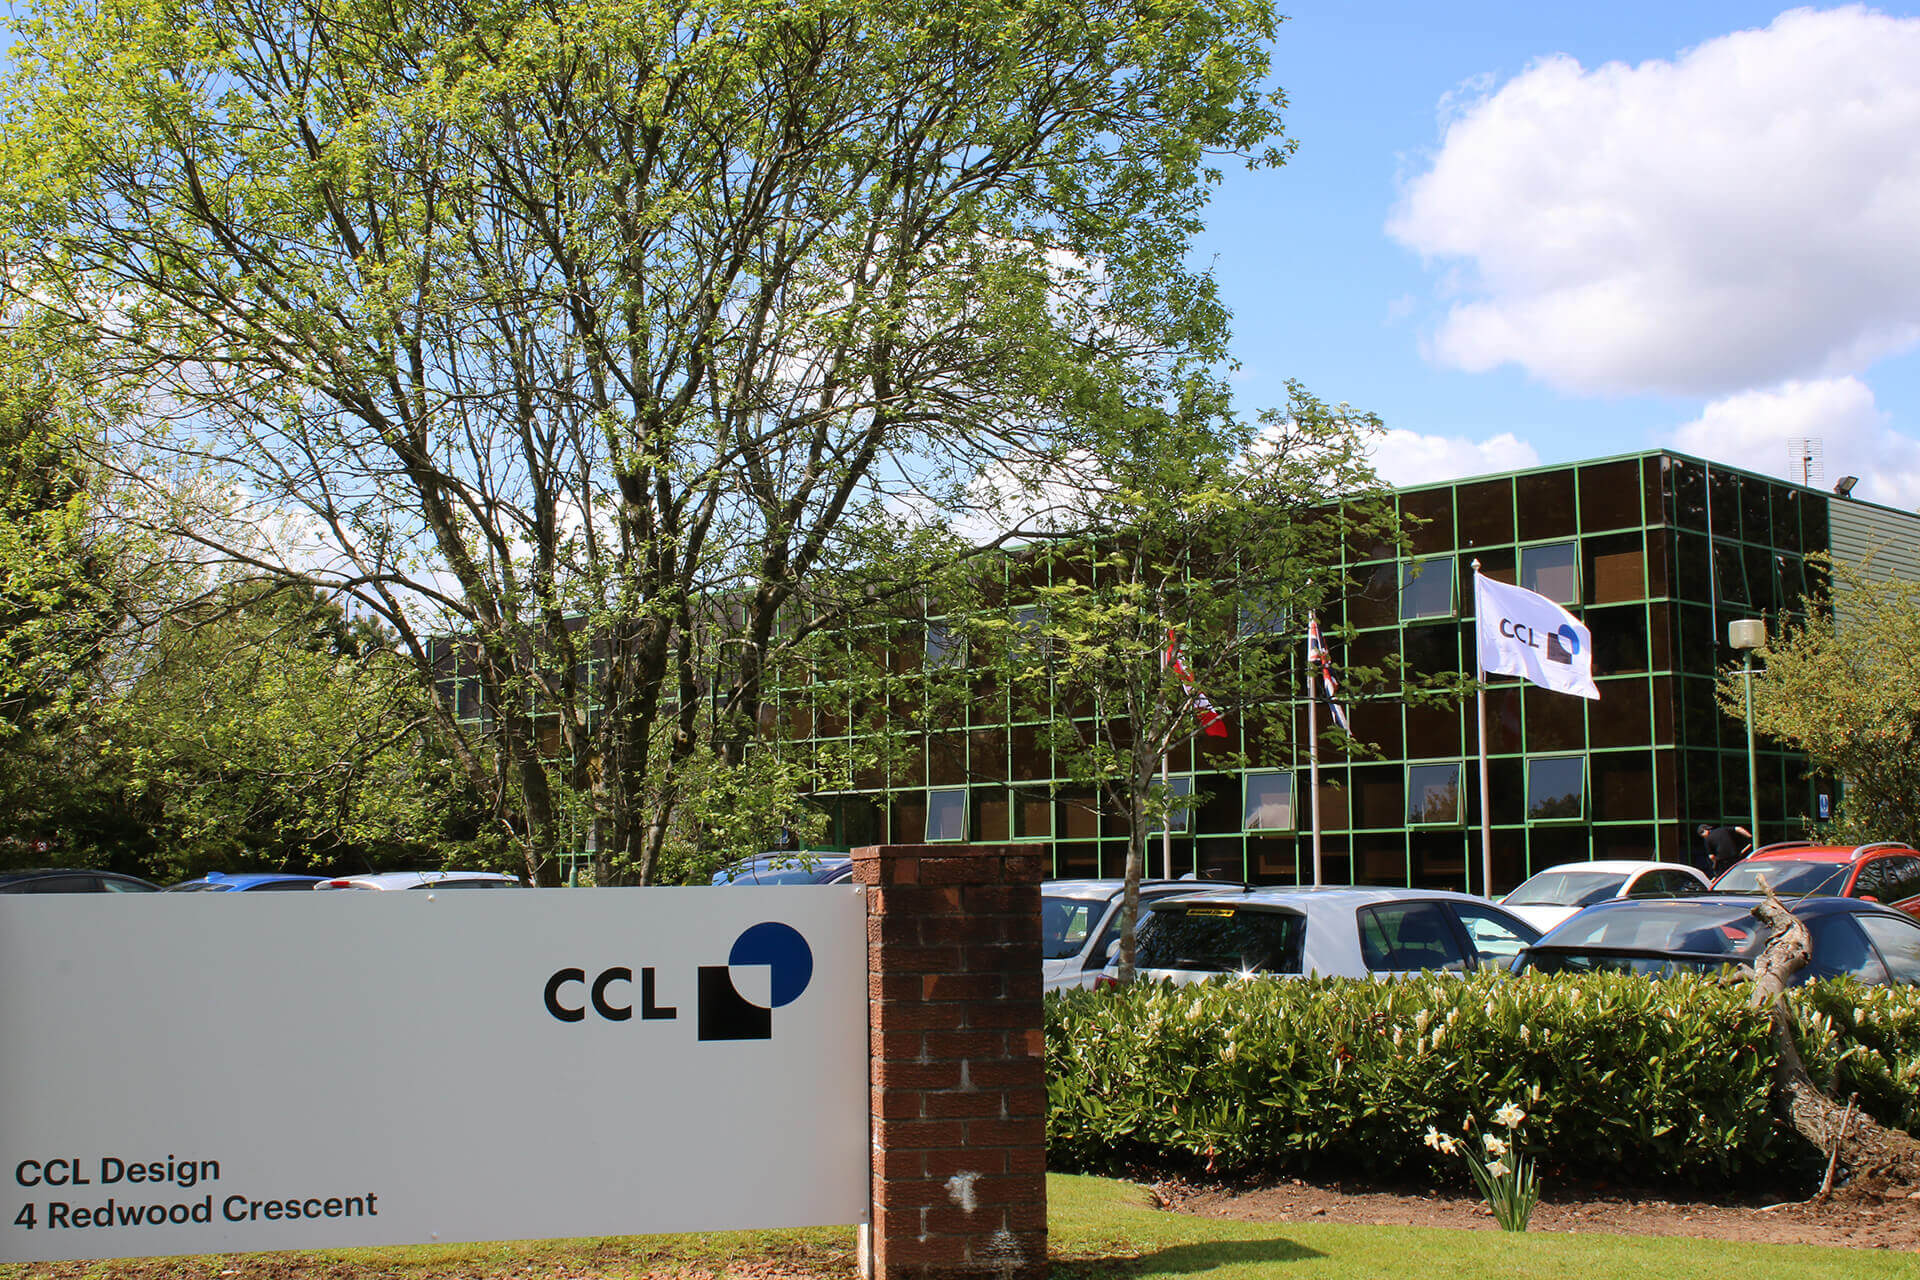 Our Manufacturing & Design Centre in East Kilbride, Scotland